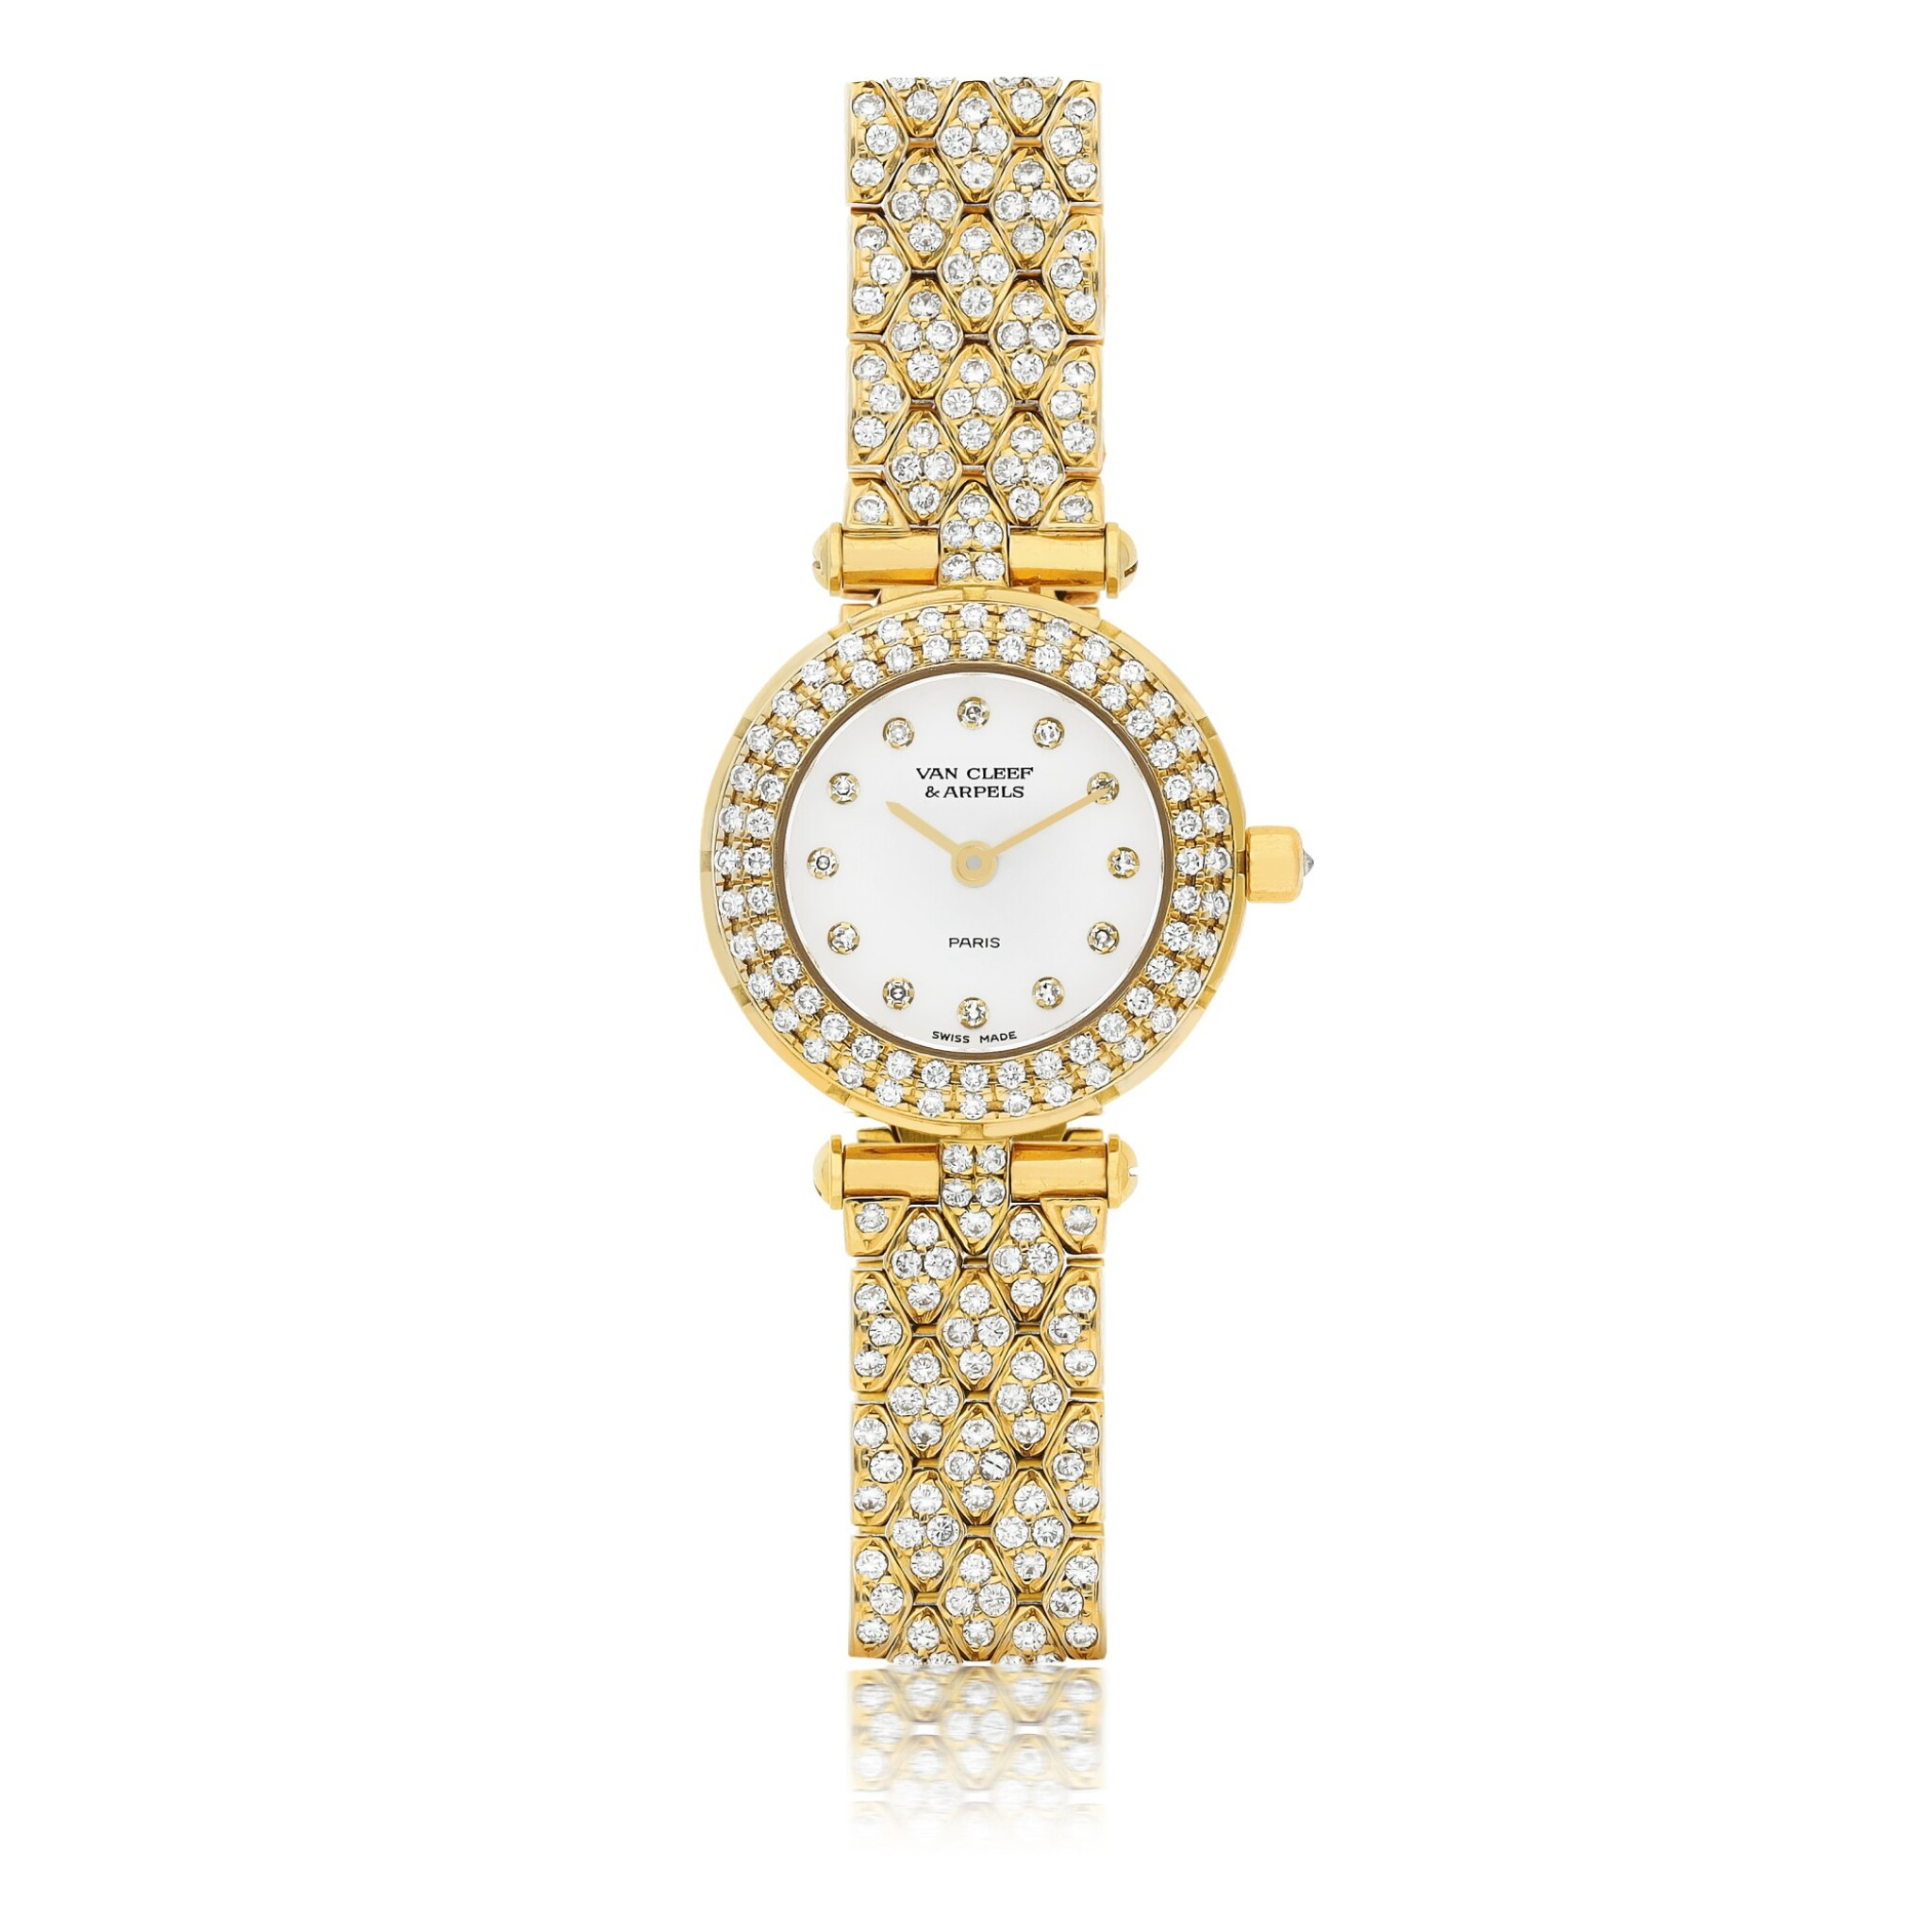 View full screen - View 1 of Lot 189. VAN CLEEF & ARPELS | A YELLOW GOLD AND DIAMOND SET BRACELET WATCH CIRCA 2010.